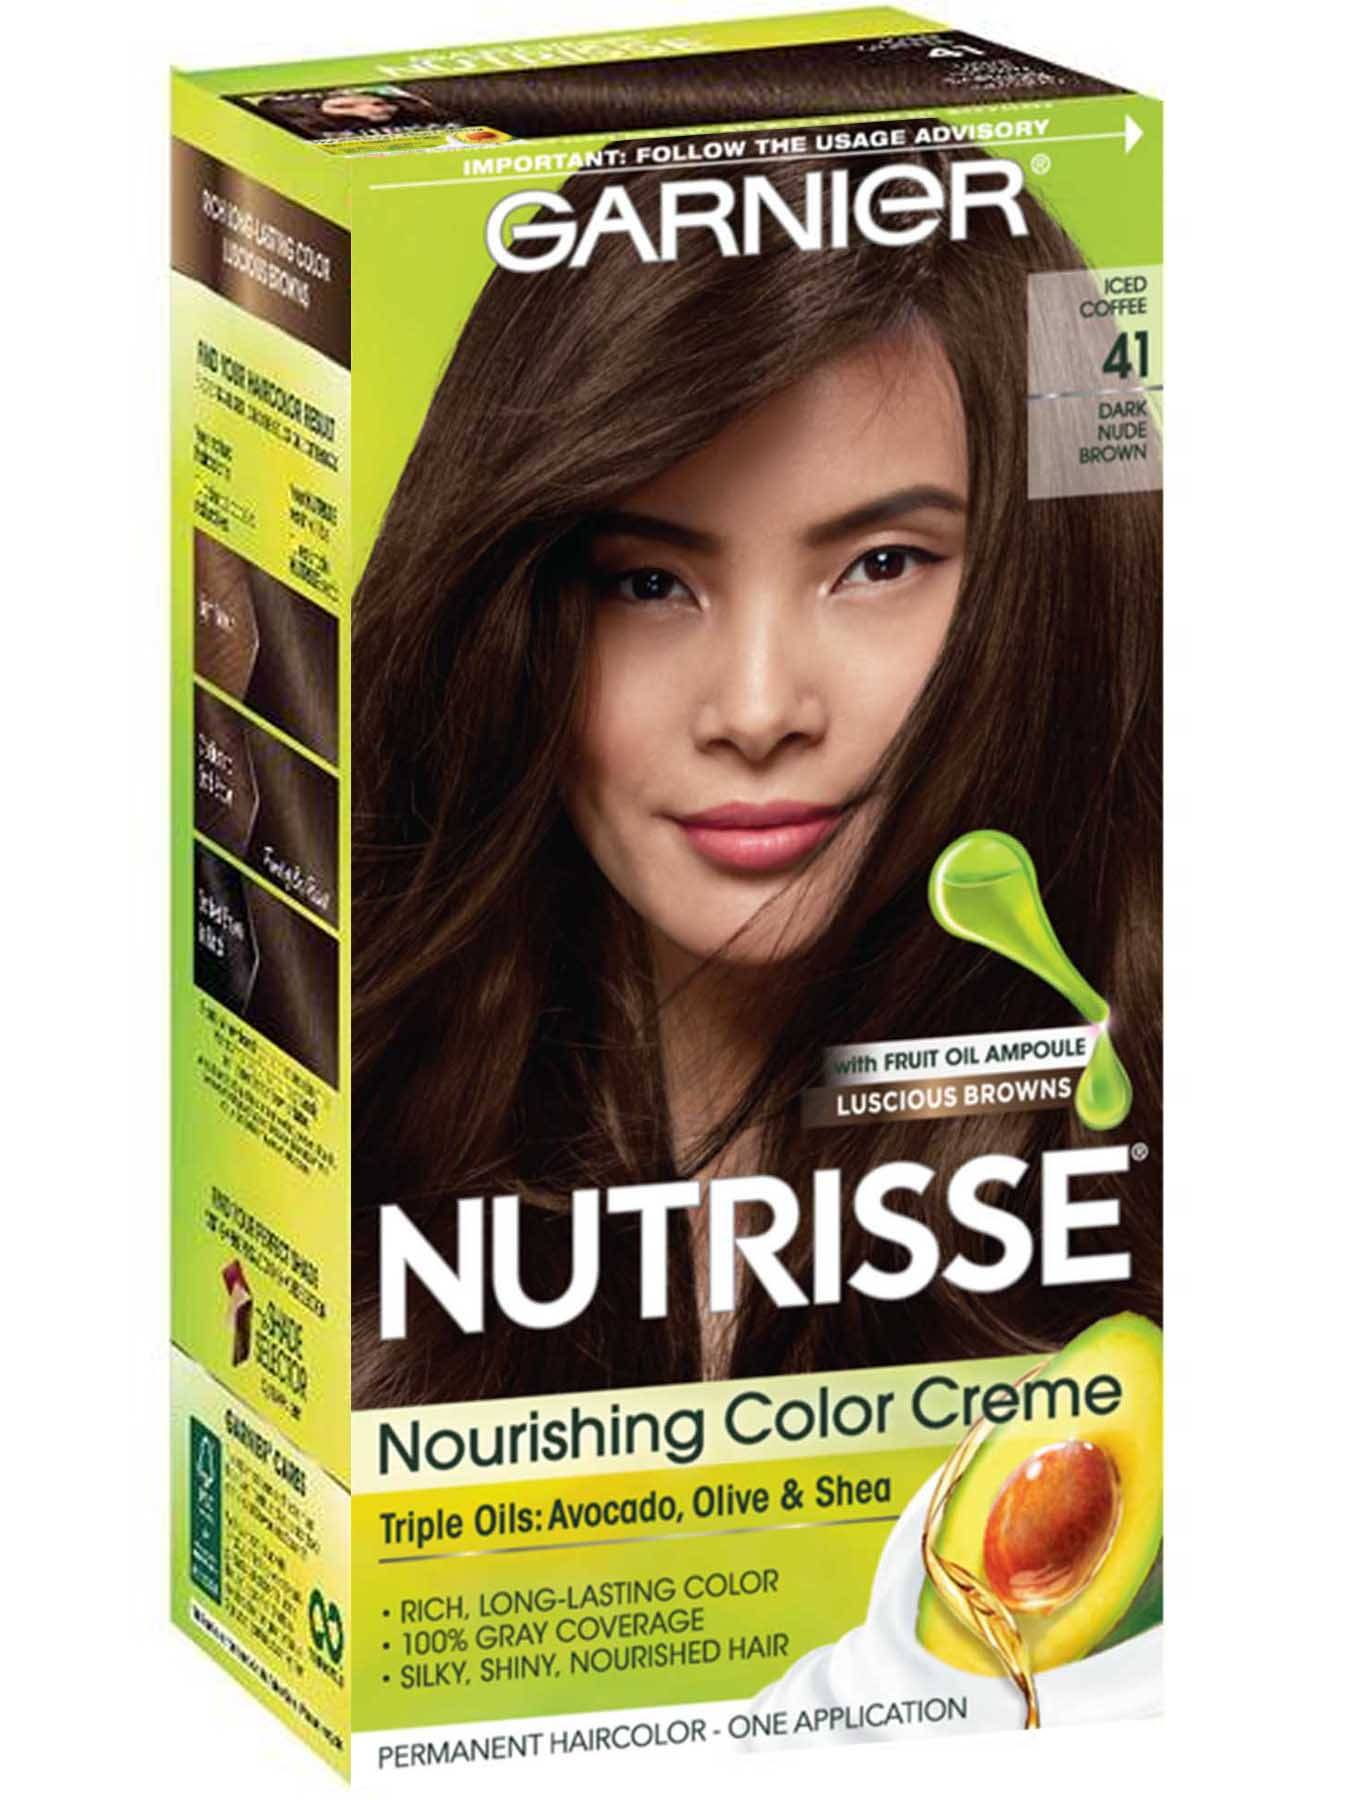 Nutrisse Nourishing Color Creme - Dark Nude Brown Hair Color - Garnier